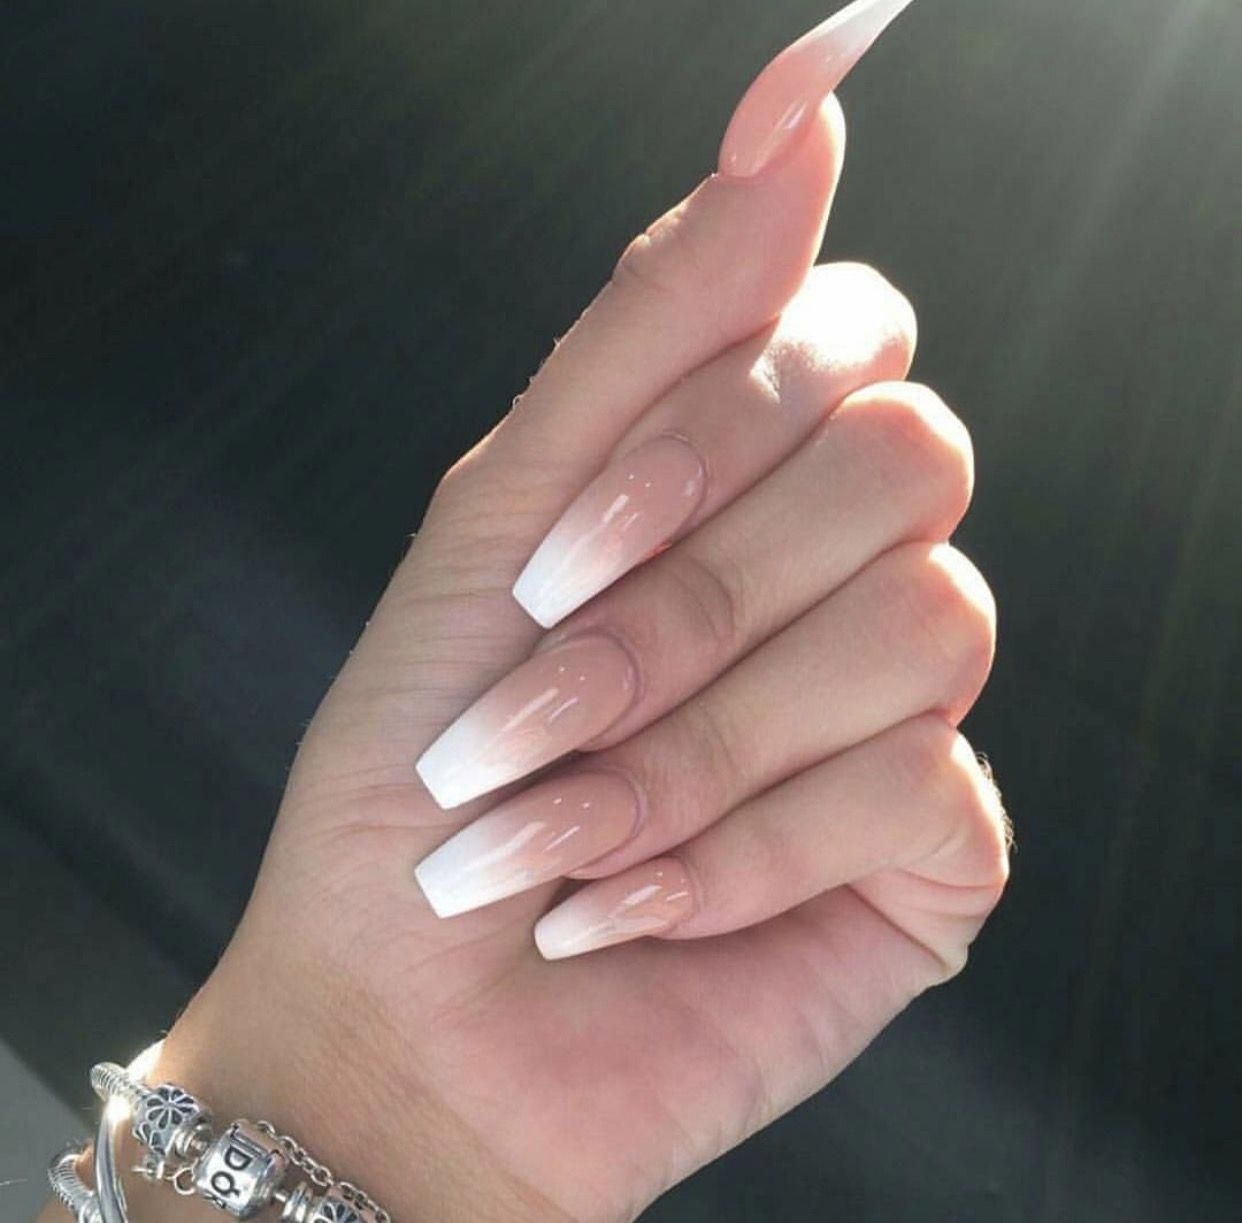 Cute French Nails Girl Hairstyles Frenchtipnaildesigns Trendy Nails Long French Tip Nails Ombre Acrylic Nails